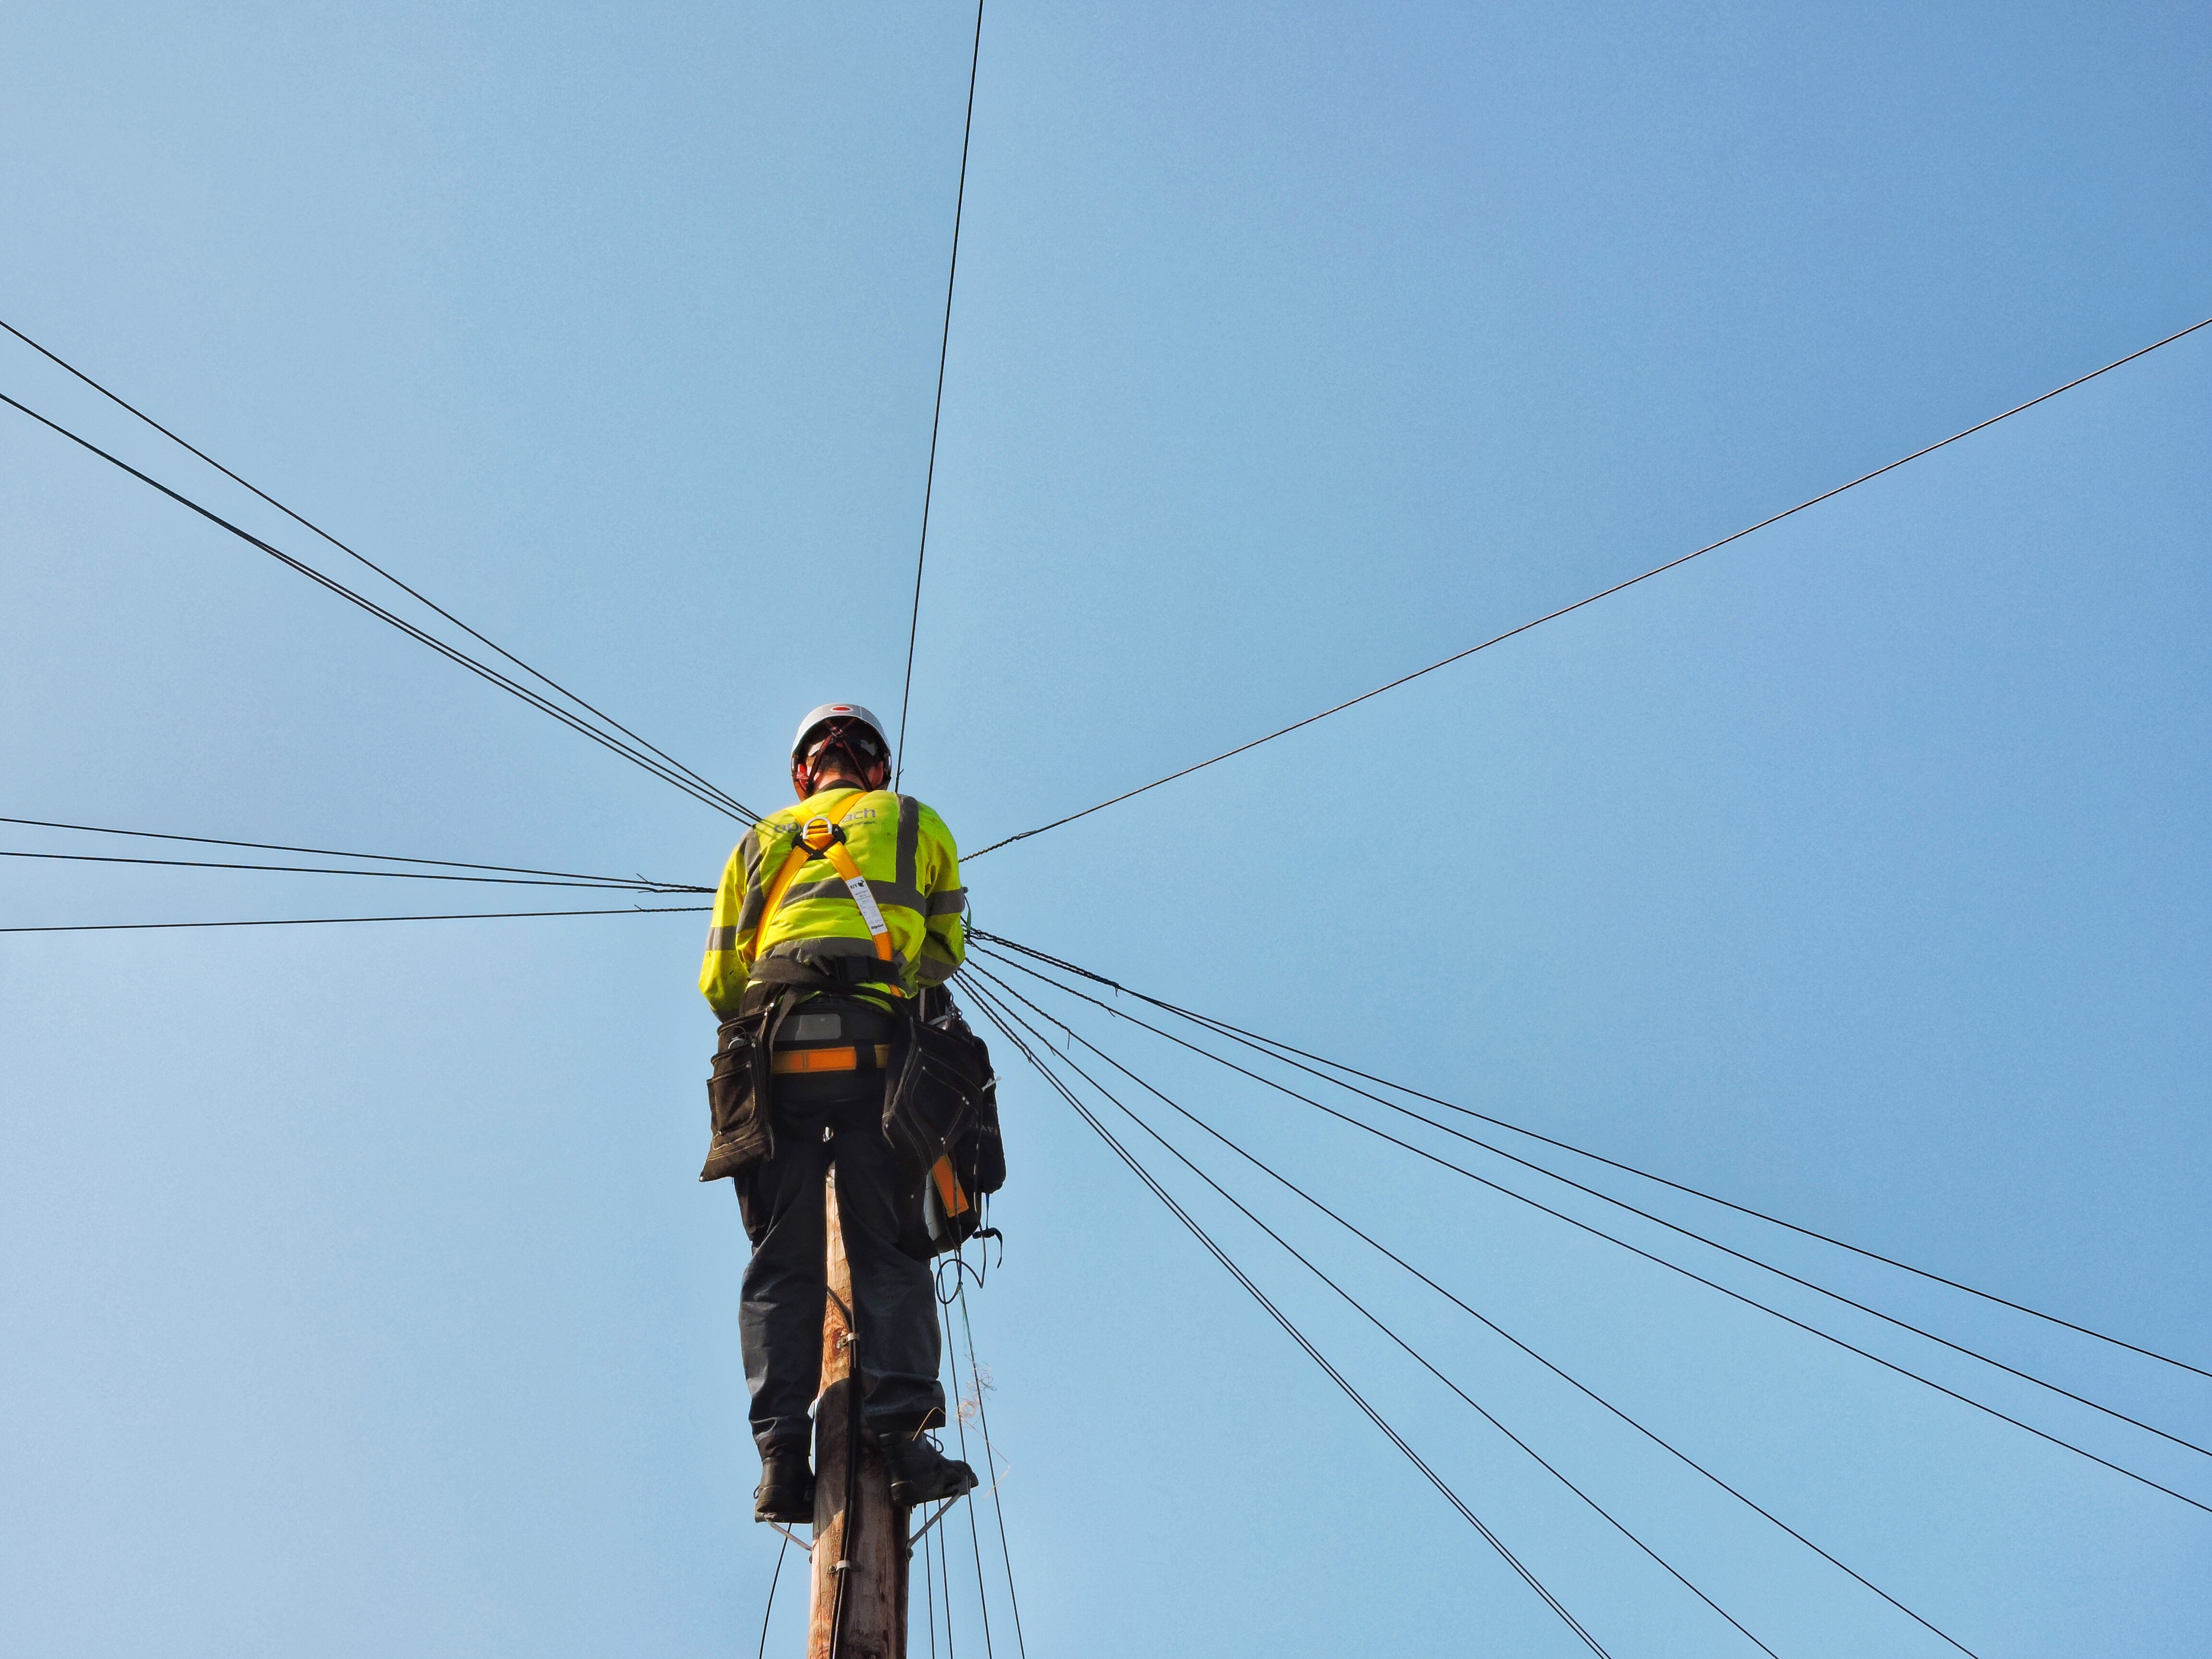 Phone Network - Telecoms Engineer working on Telegraph Pole